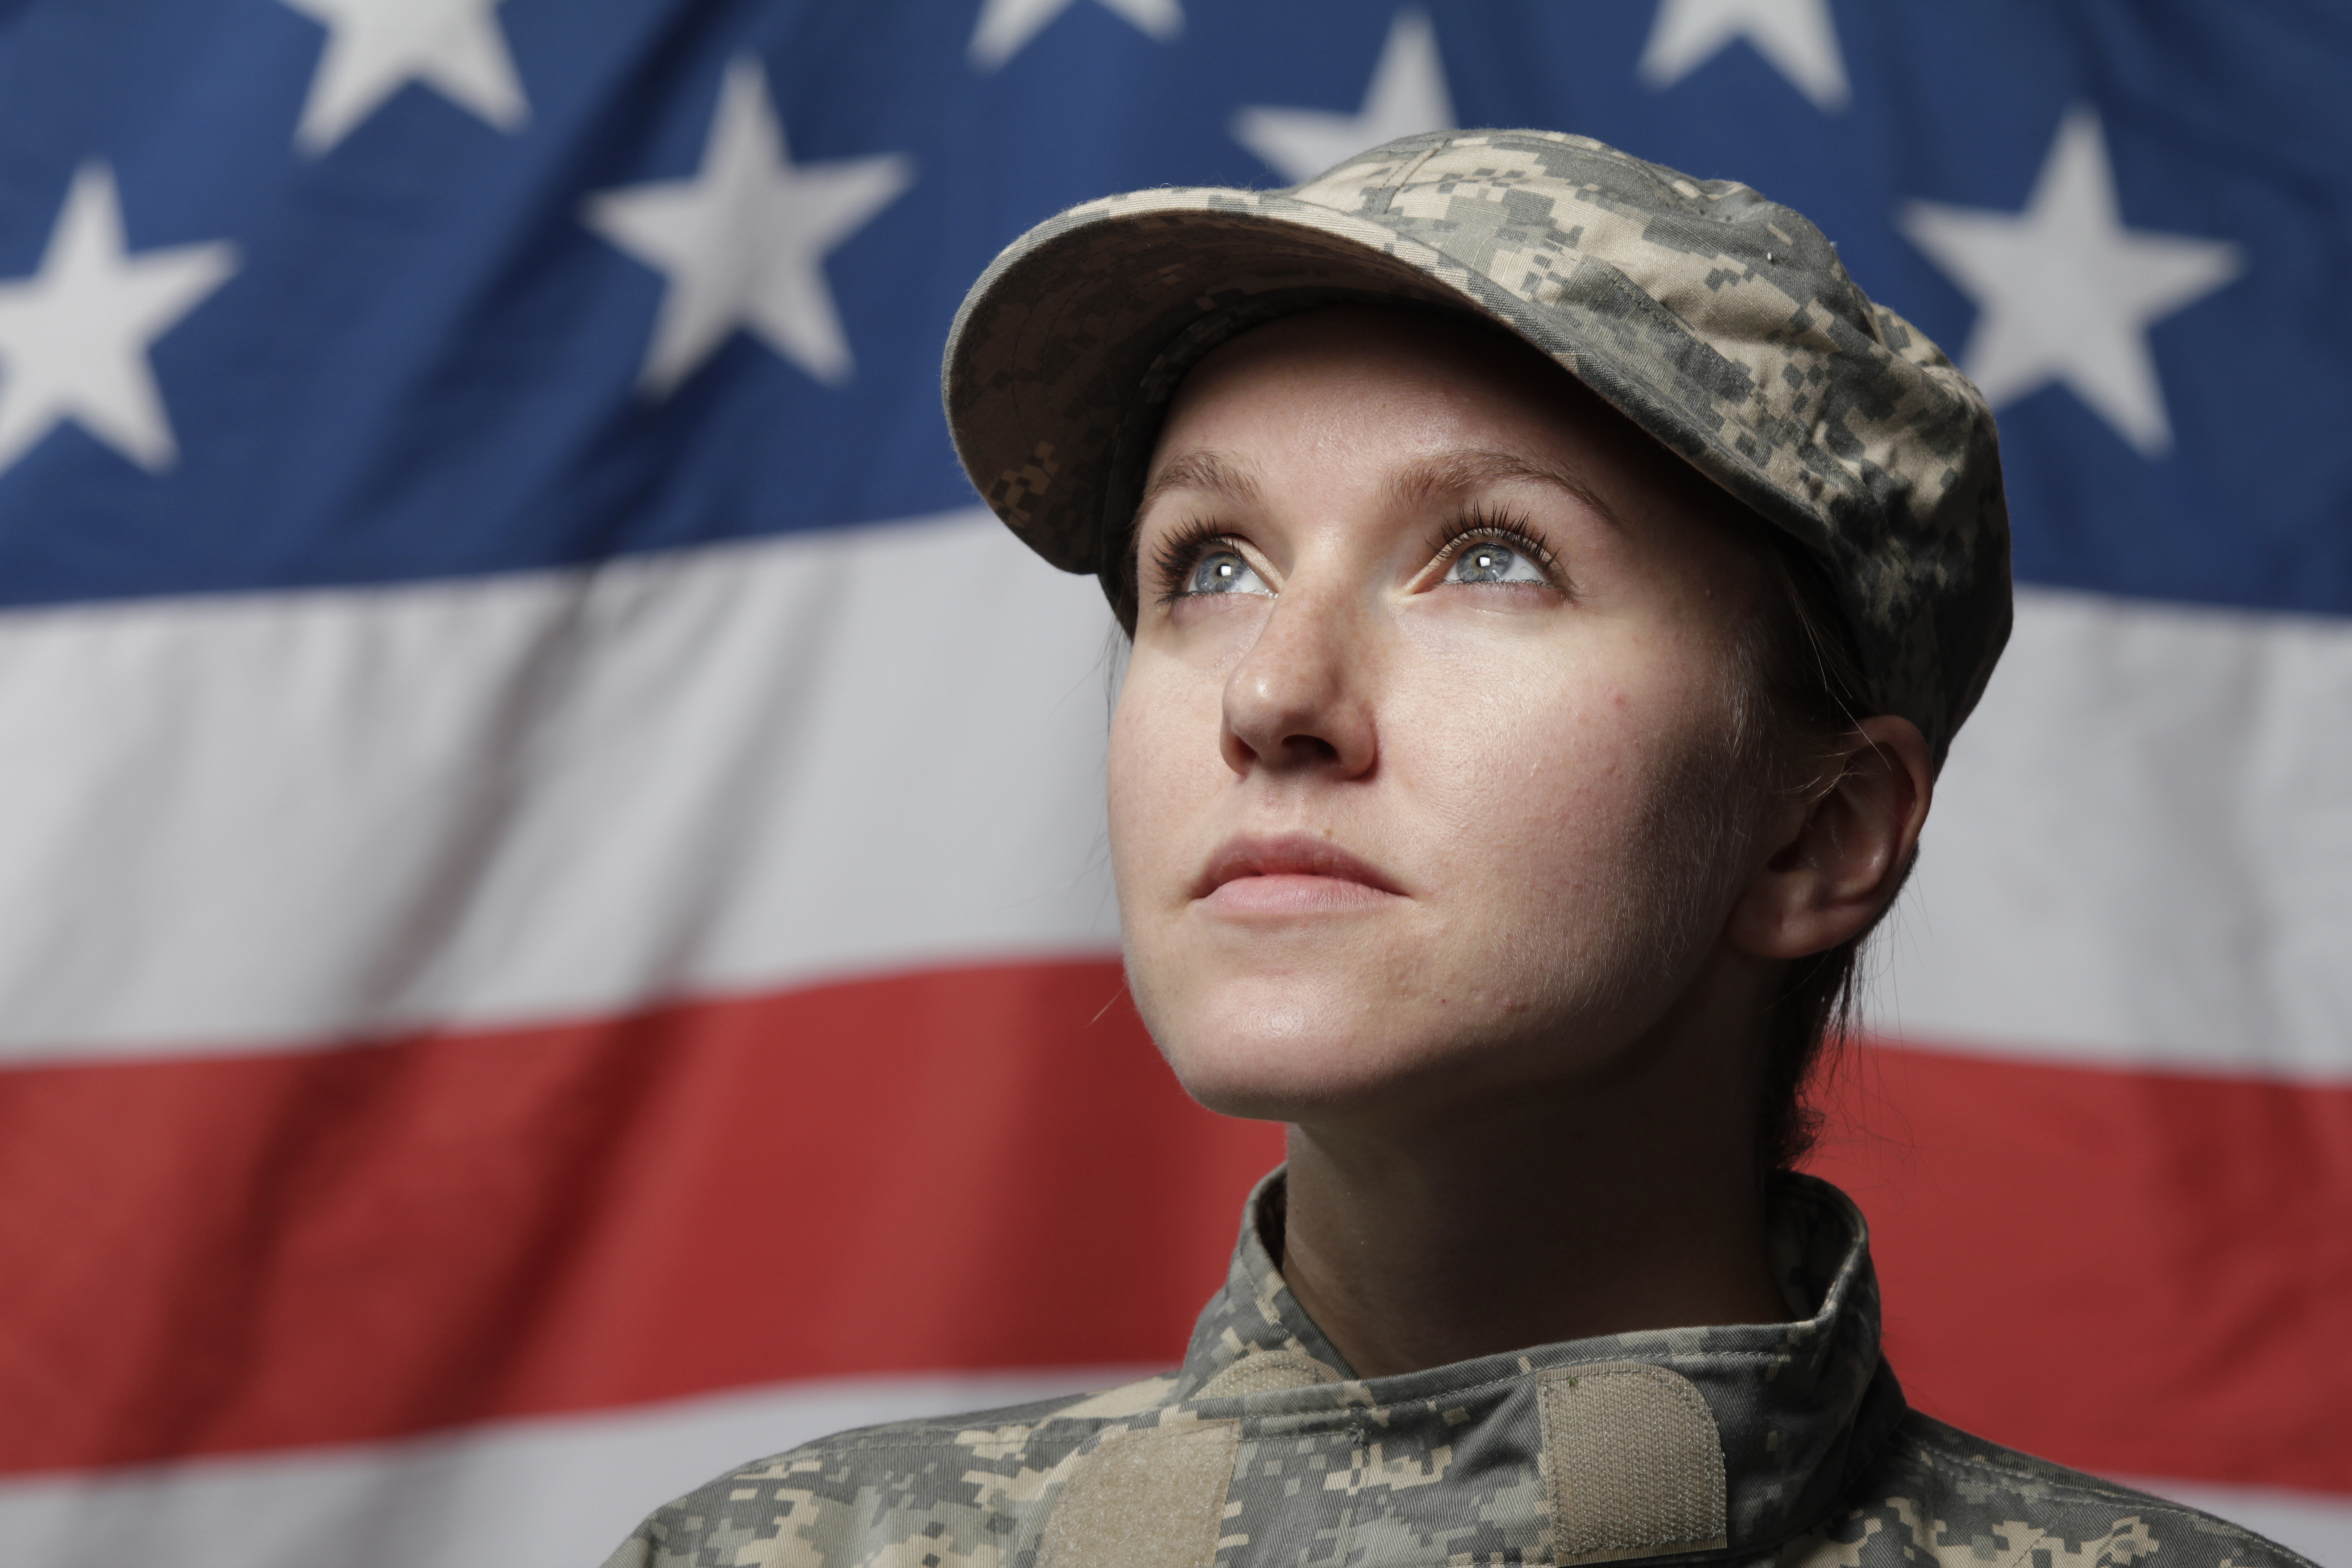 Combat Ban Lift Major Step For Women's Rights